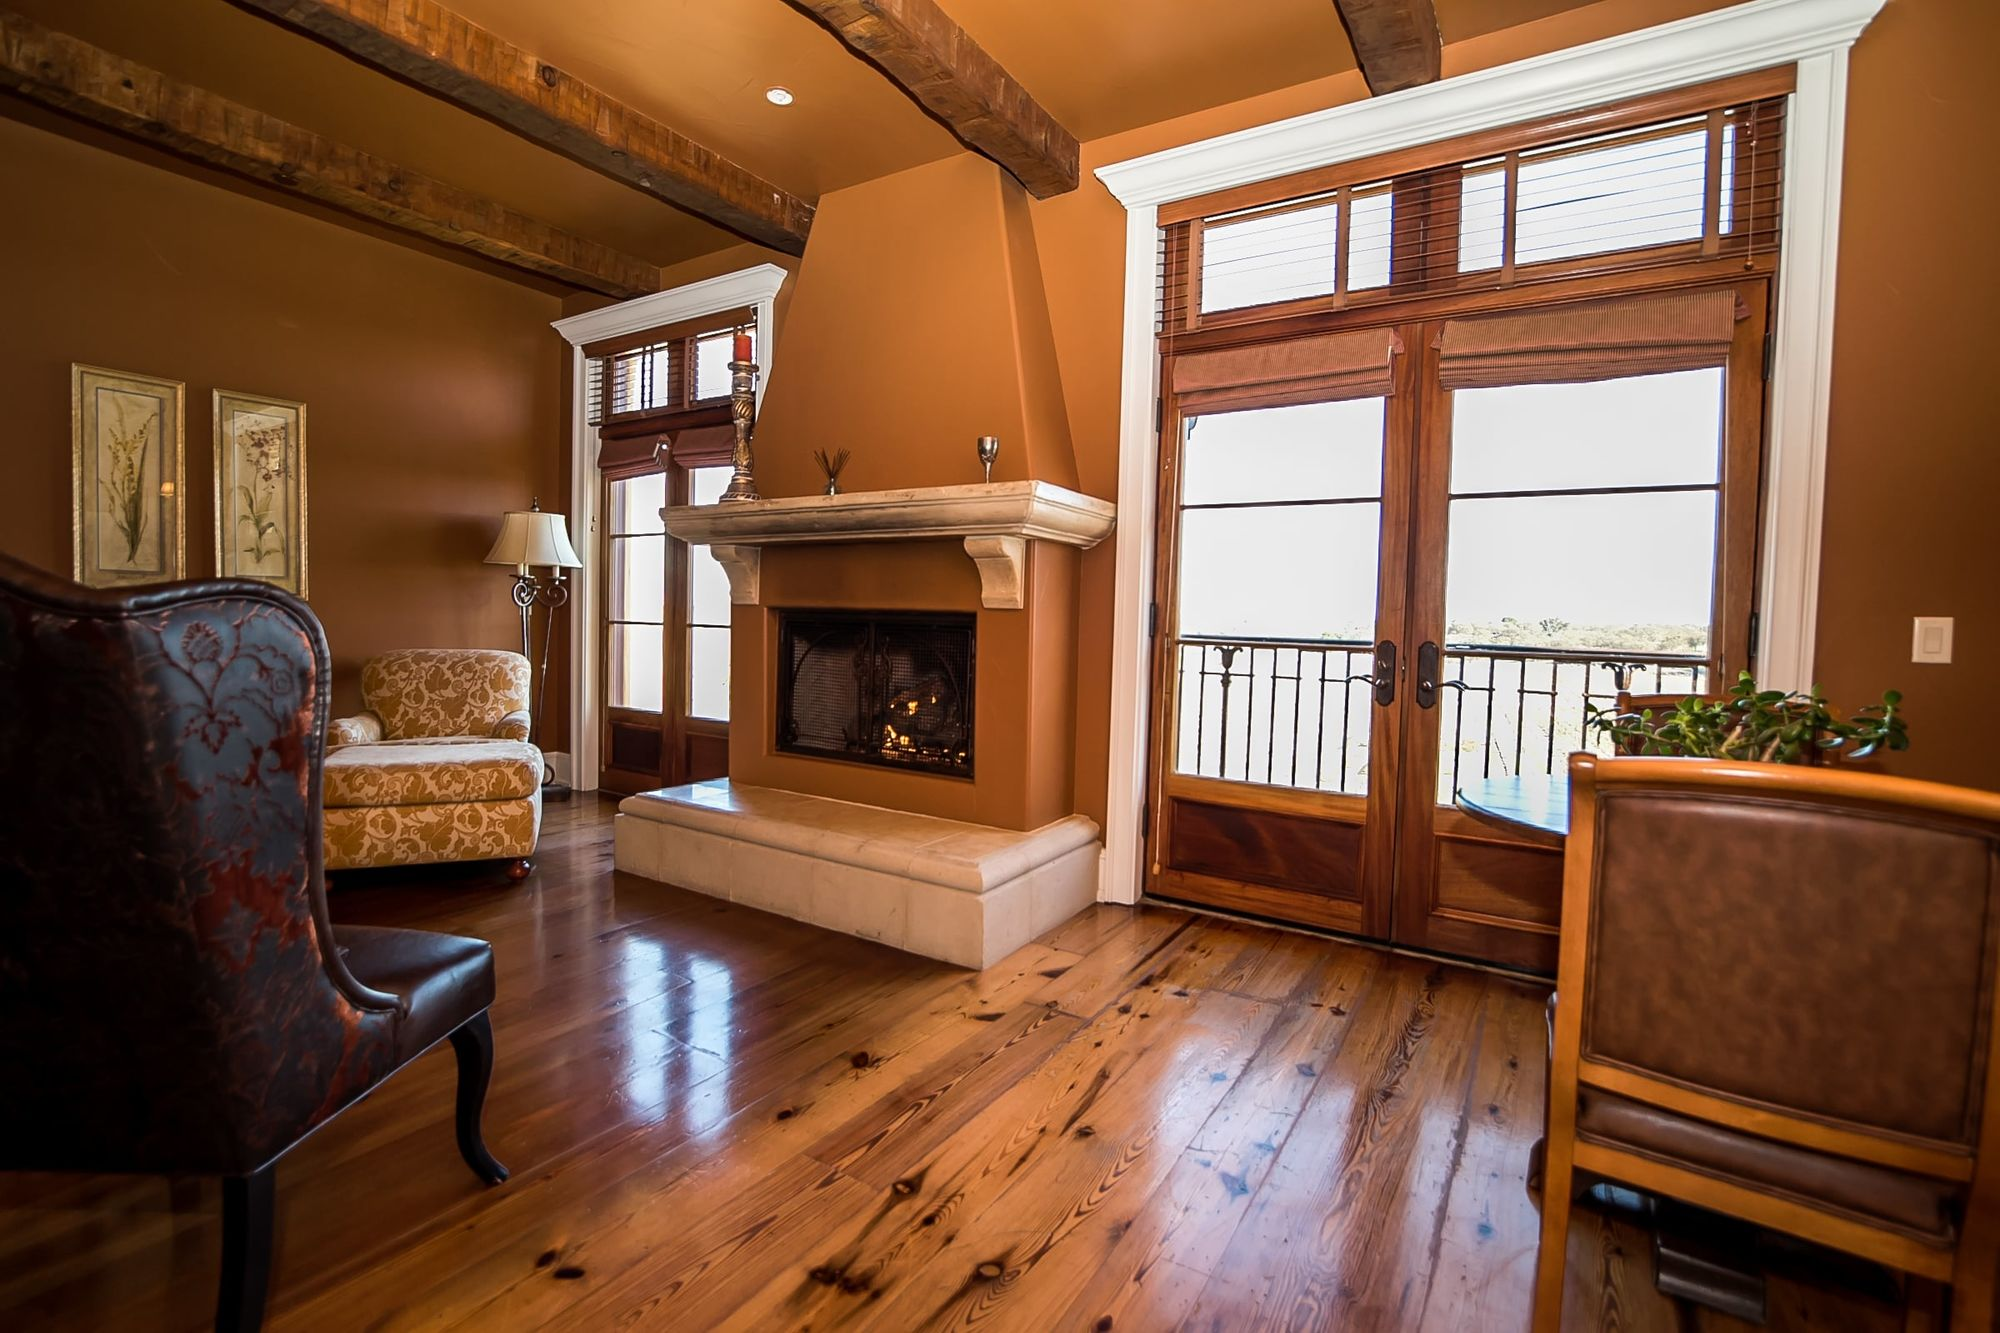 Sitting room with decorative fireplace and French doors